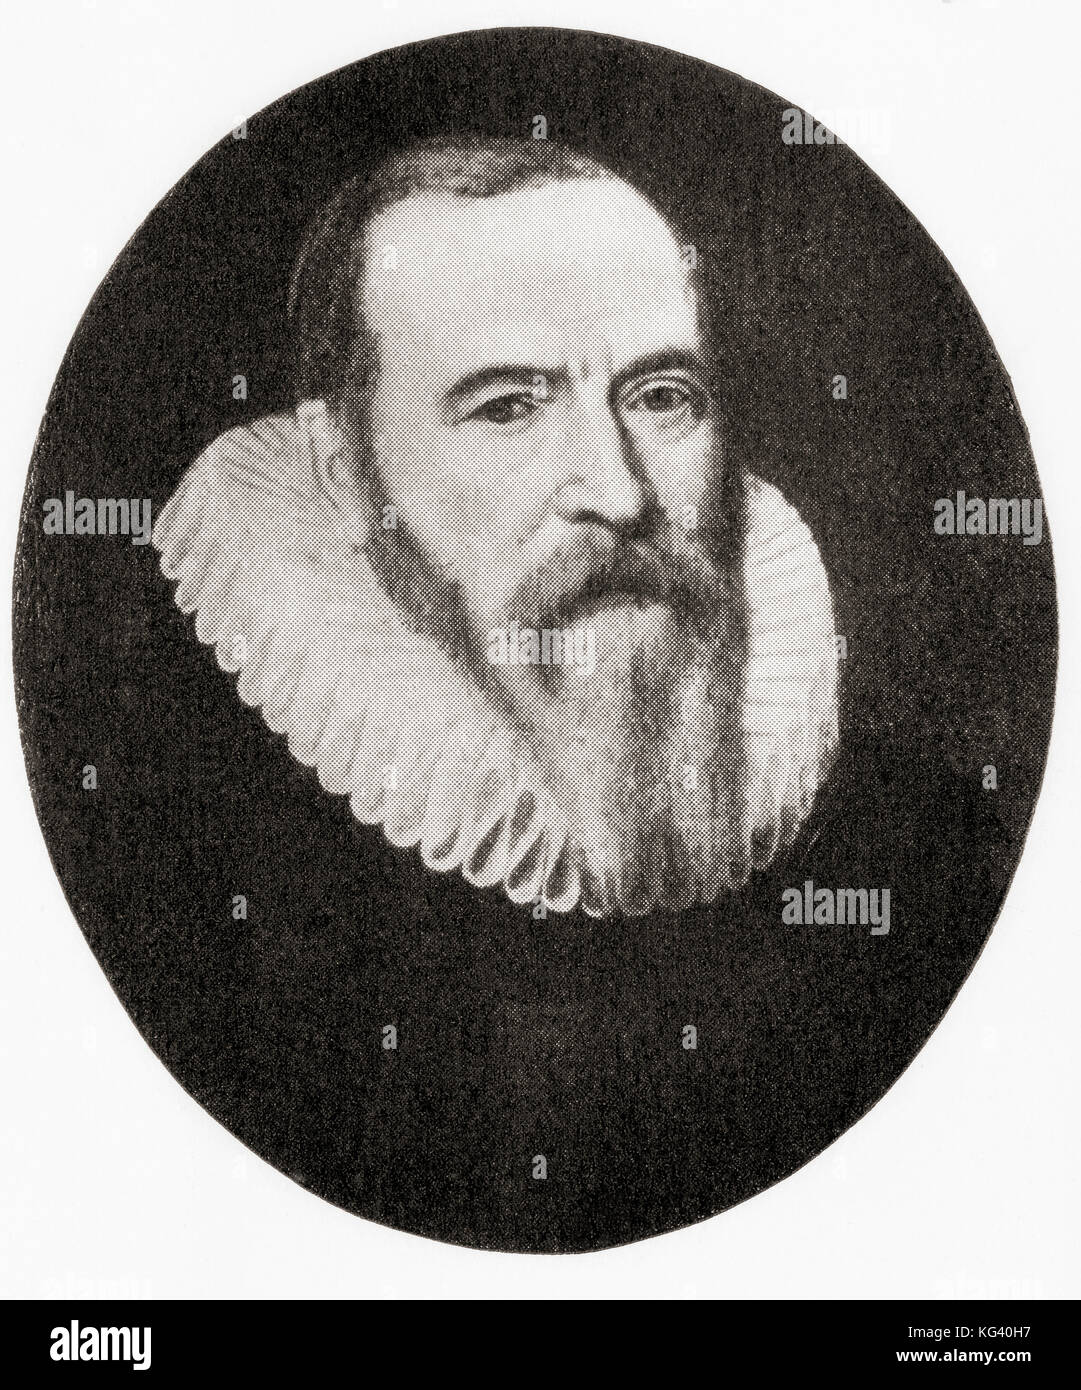 Johan van Oldenbarnevelt, 1547 – 1619.  Dutch statesman who played an important role in the Dutch struggle for independence - Stock Image